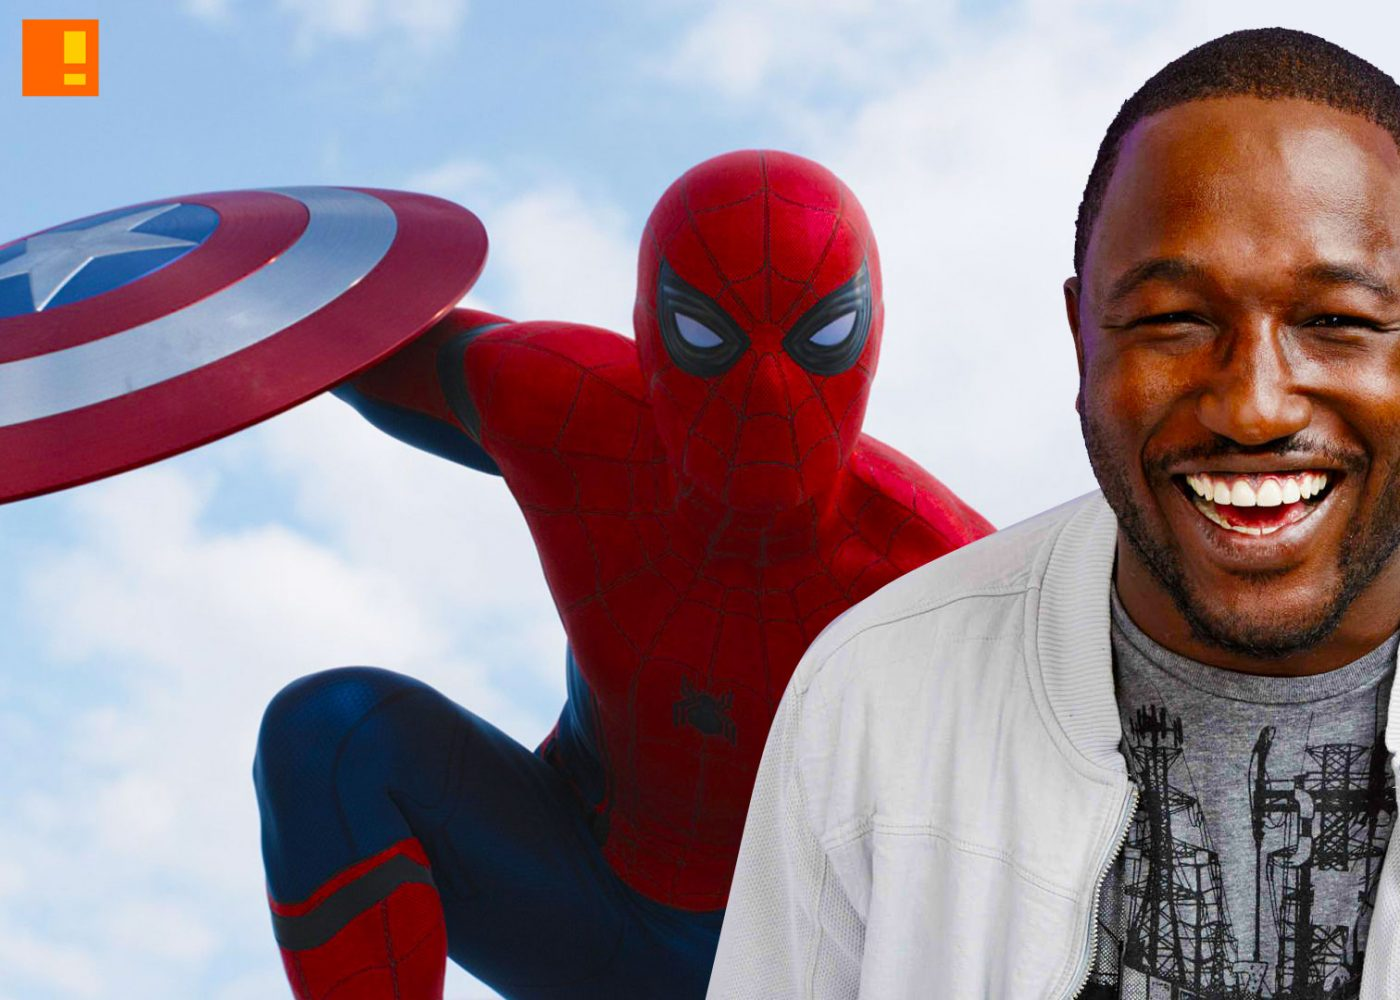 hannibal Buress, Spider-man, the action pixel, homecoming, entertainment on tap